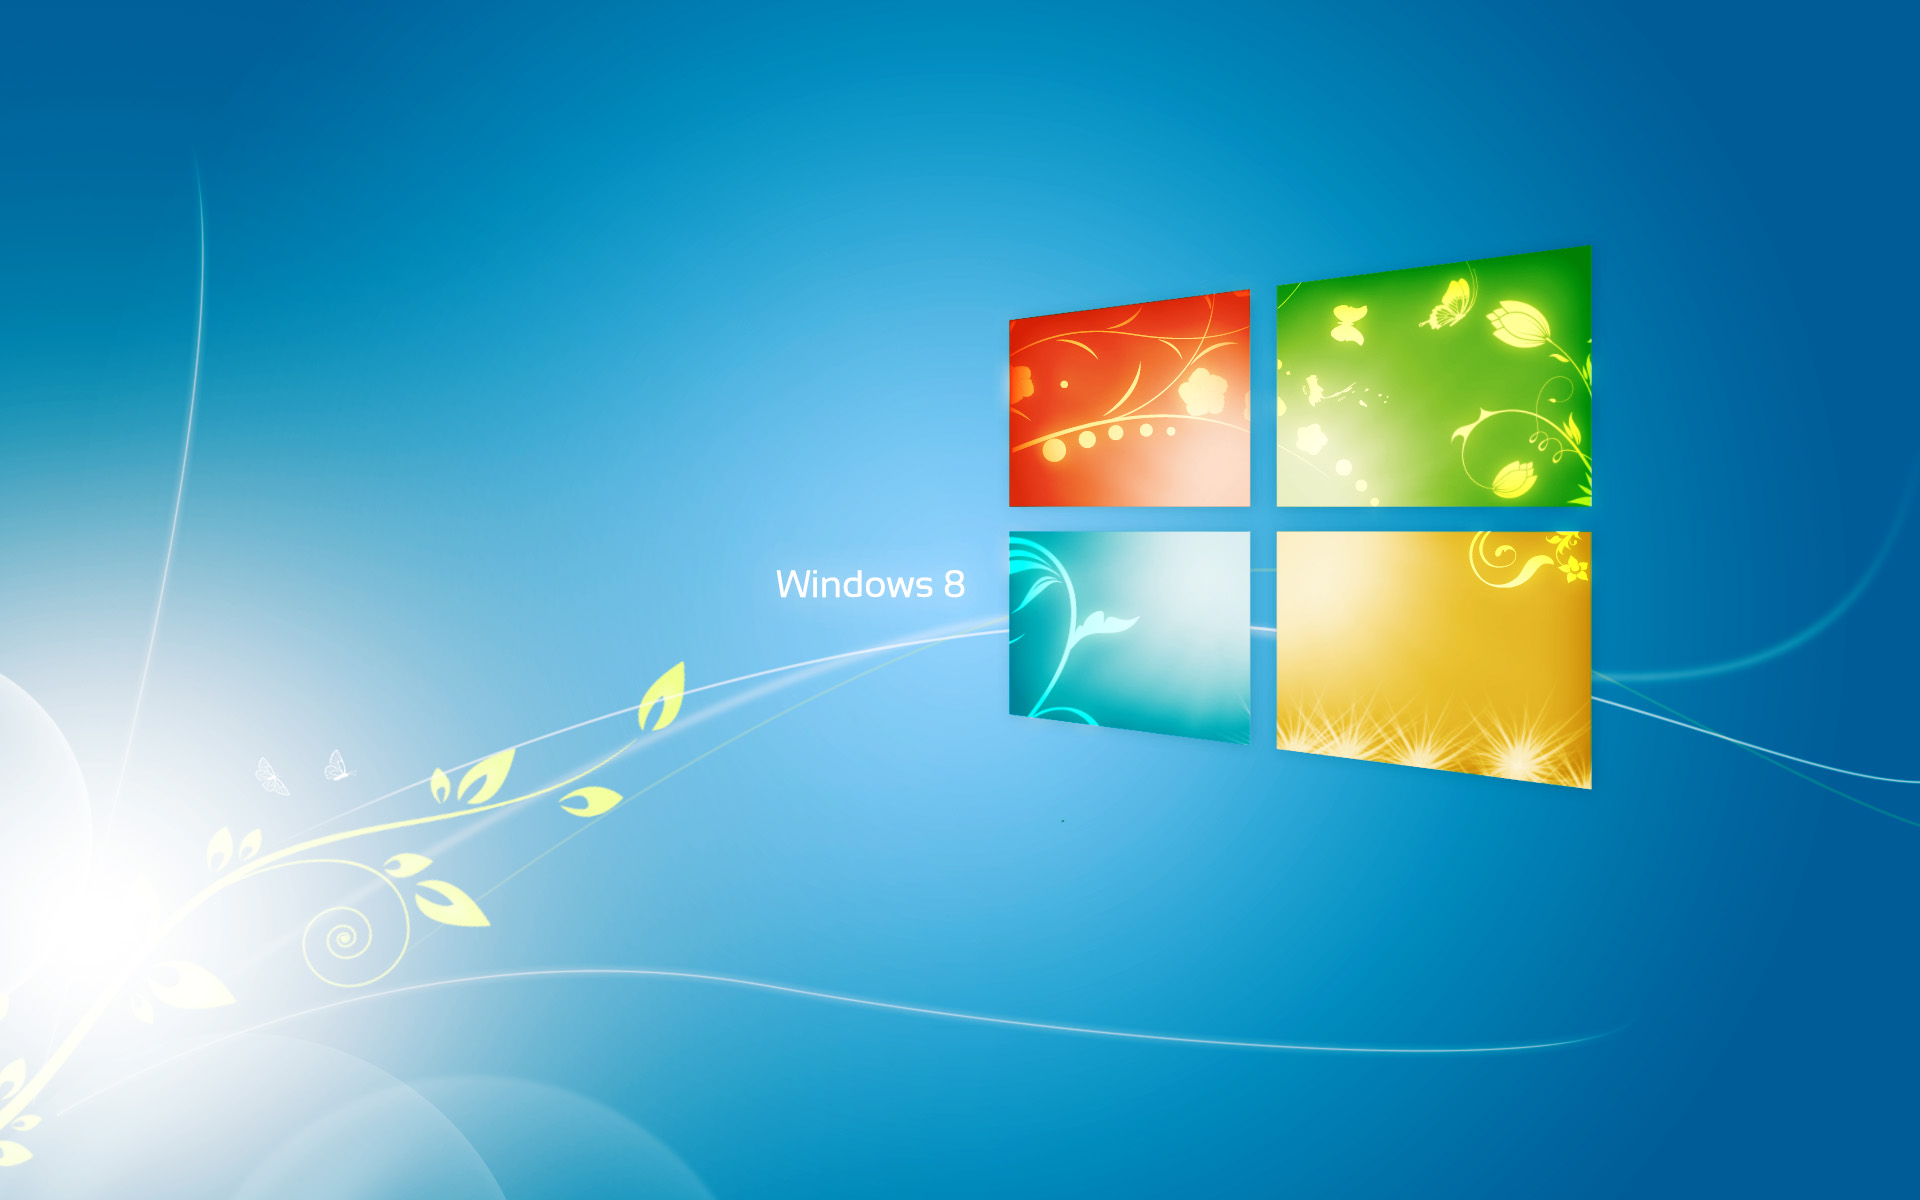 wallpapers windows 826352750.jpg